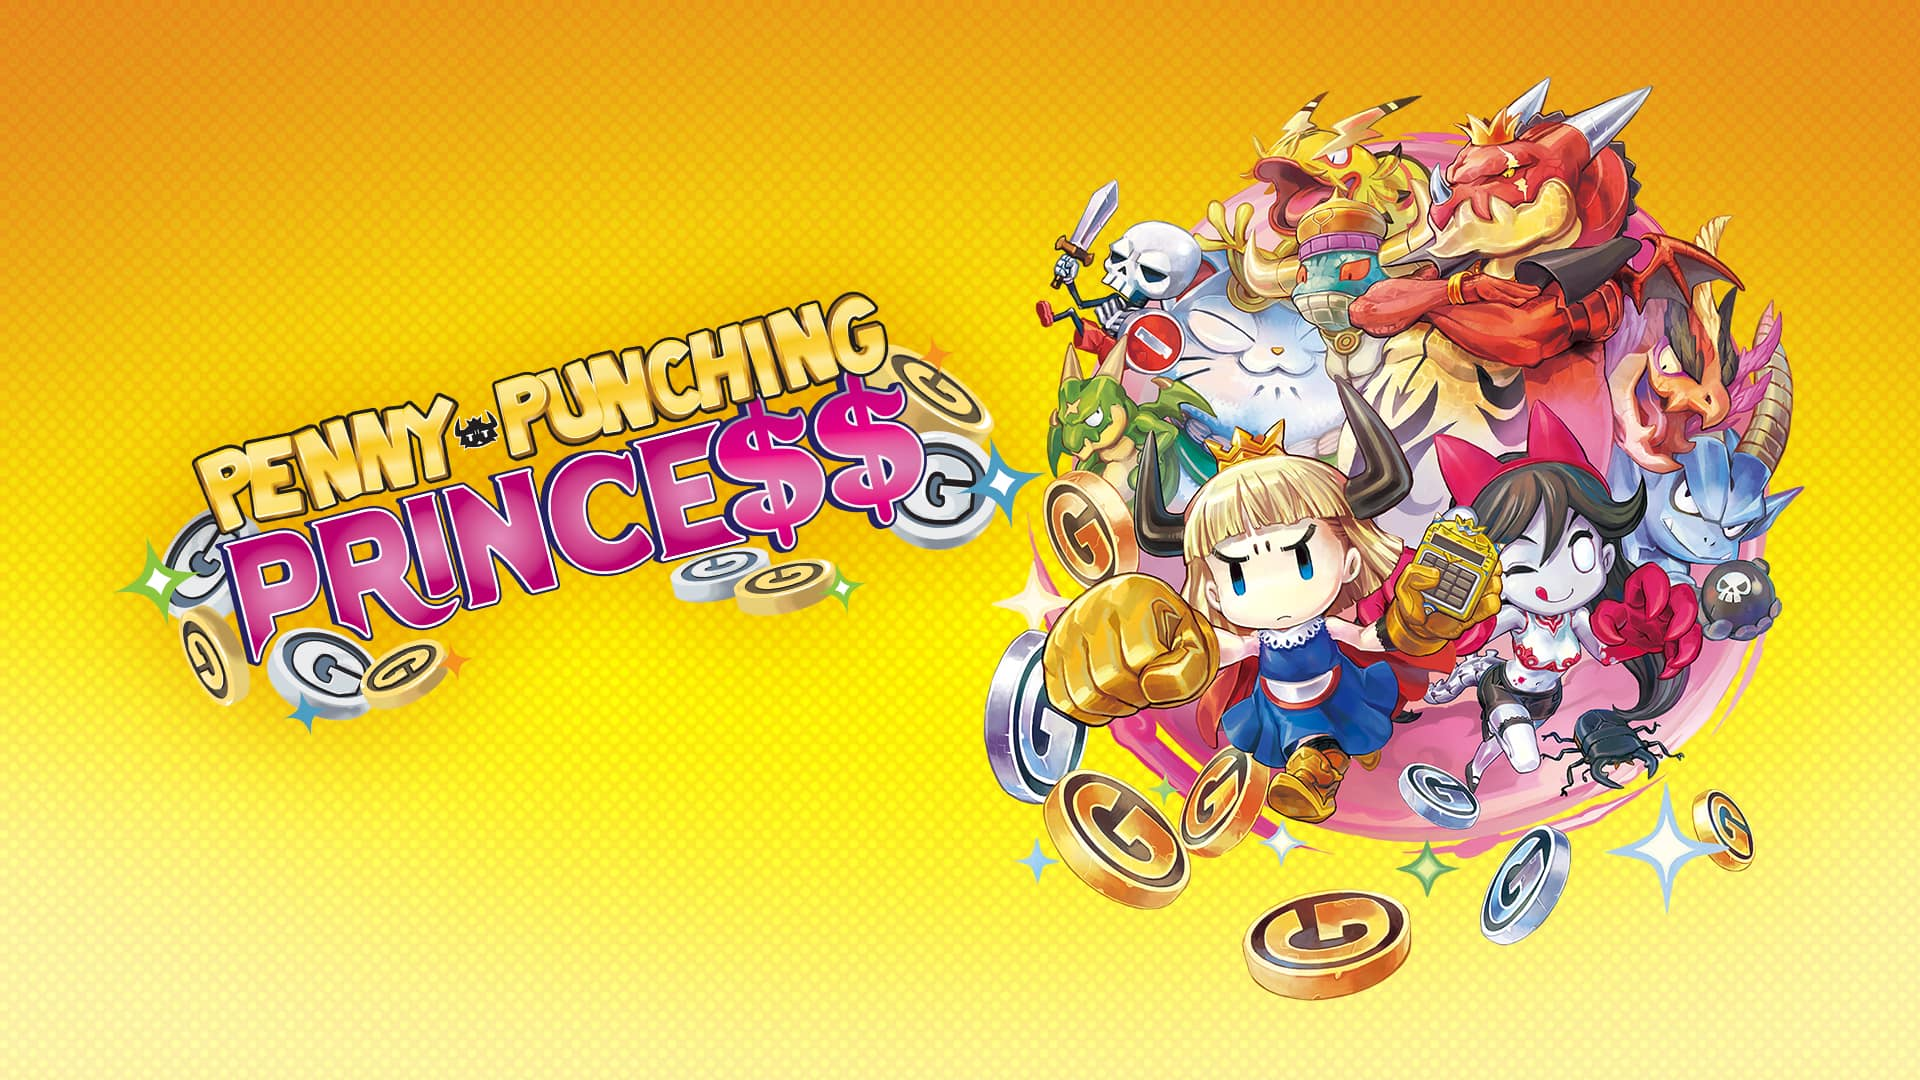 Nintendo eShop NIS America Sale - Penny-Punching Princess $16, The Lost Child $20 and more